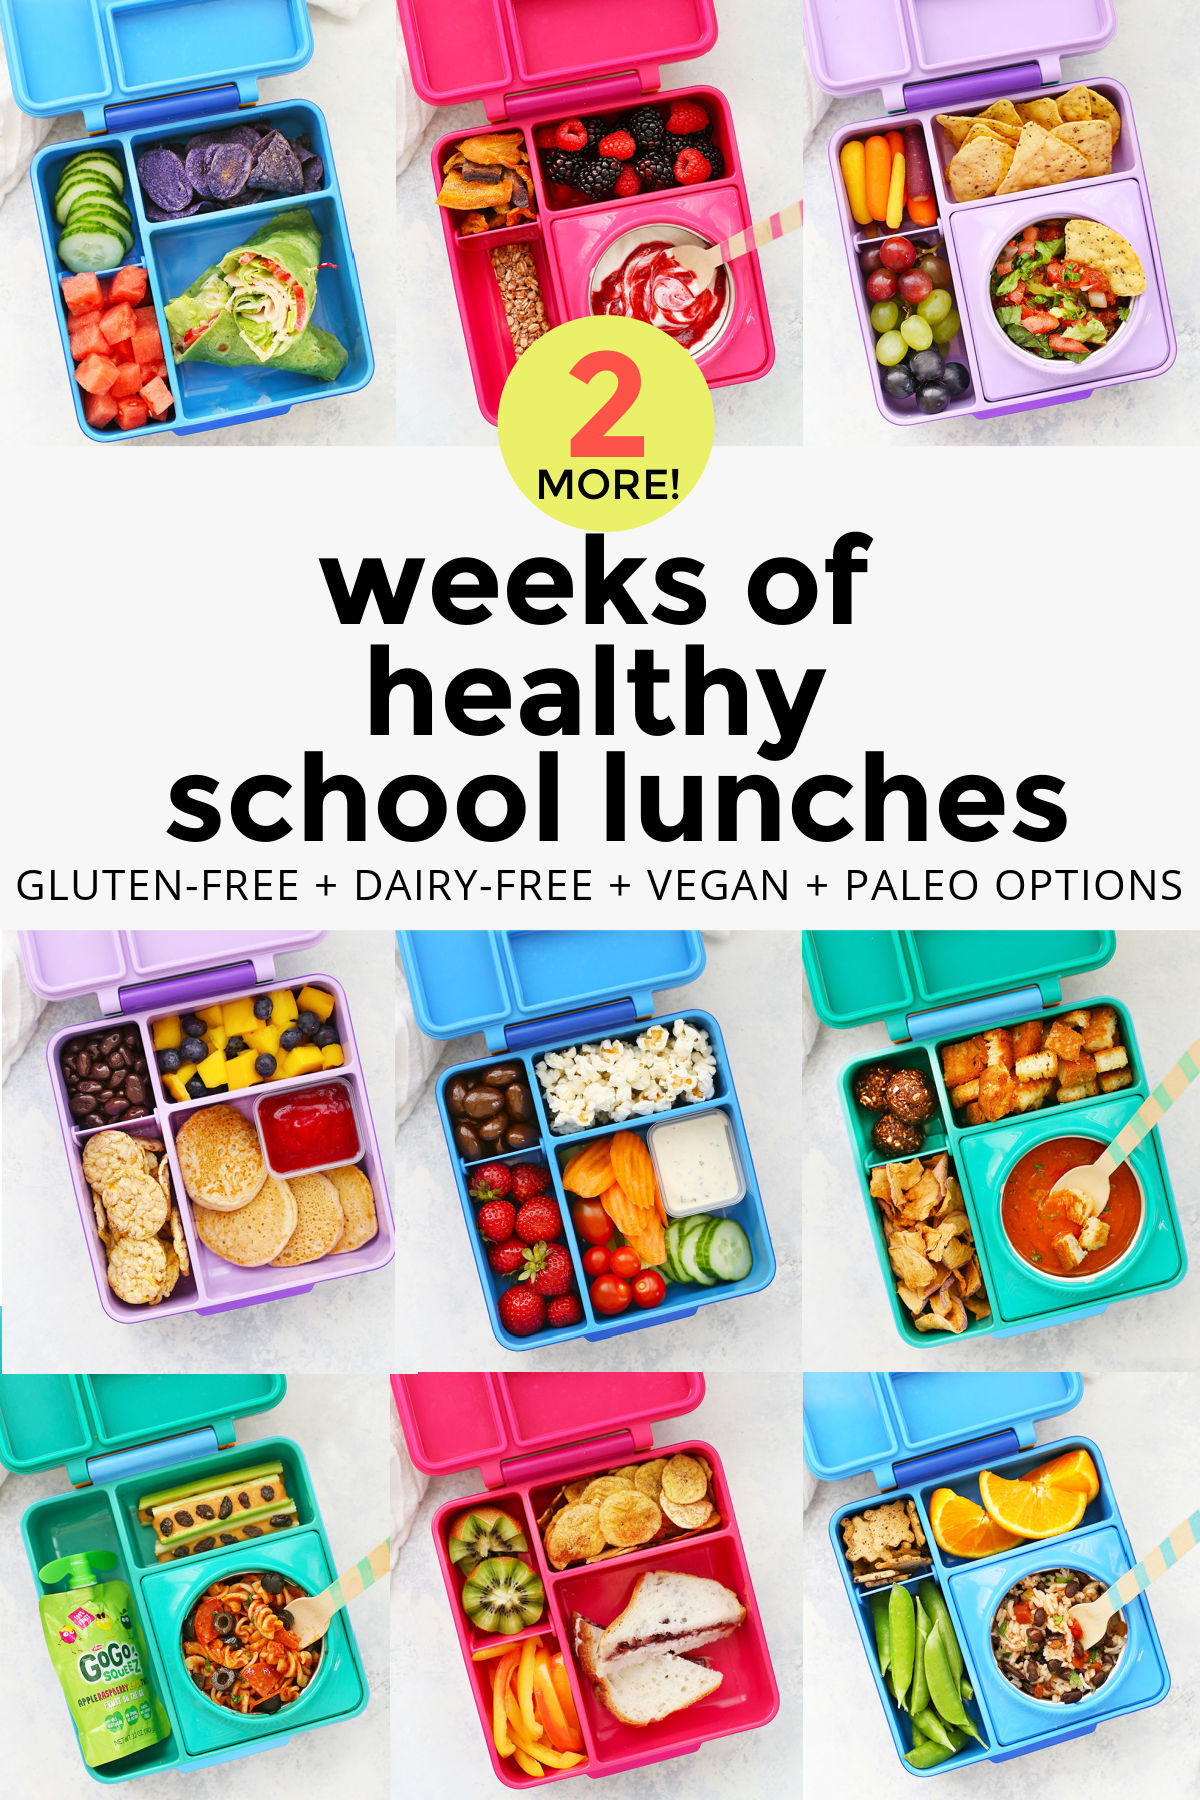 2 Weeks of Healthy School Lunches! These gluten free, dairy free school lunch ideas are all kid-tested and DELICIOUS! // School lunches // school lunch ideas // gluten free school lunches // dairy free school lunches // vegan school lunches, paleo school lunches #glutenfree #dairyfree #schoollunch #schoollunches #packedlunches #momhack